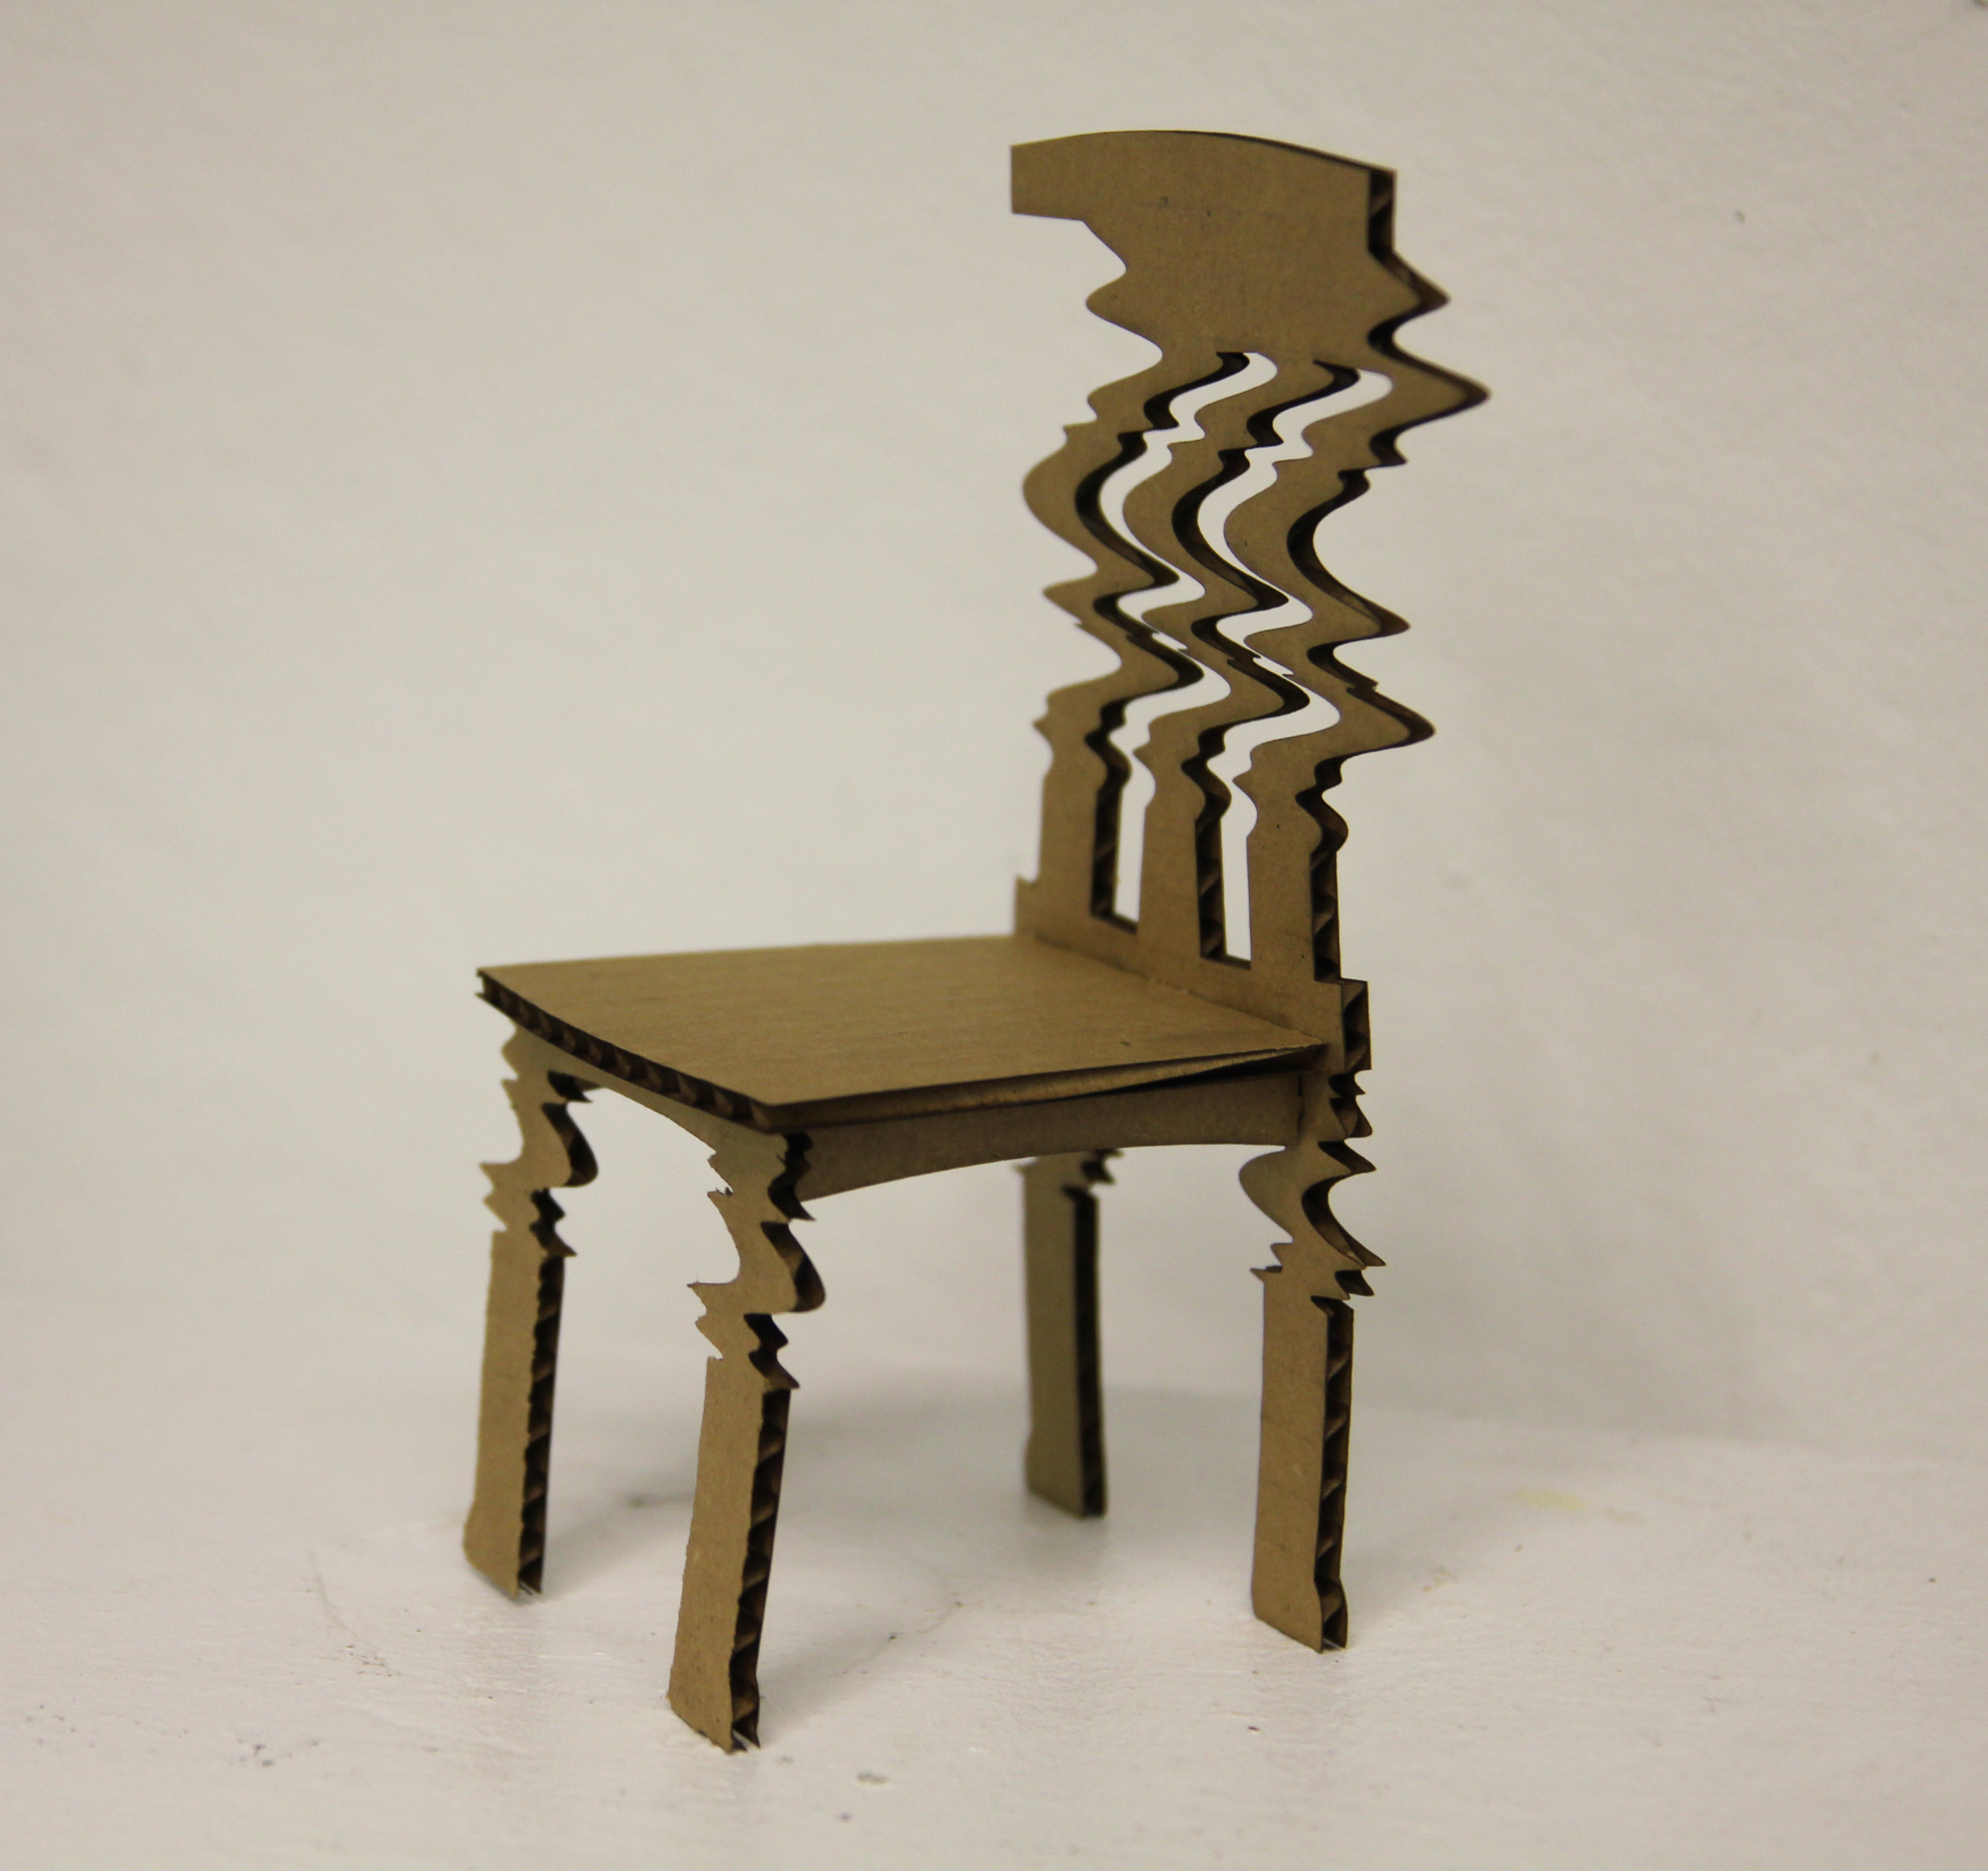 chairs3